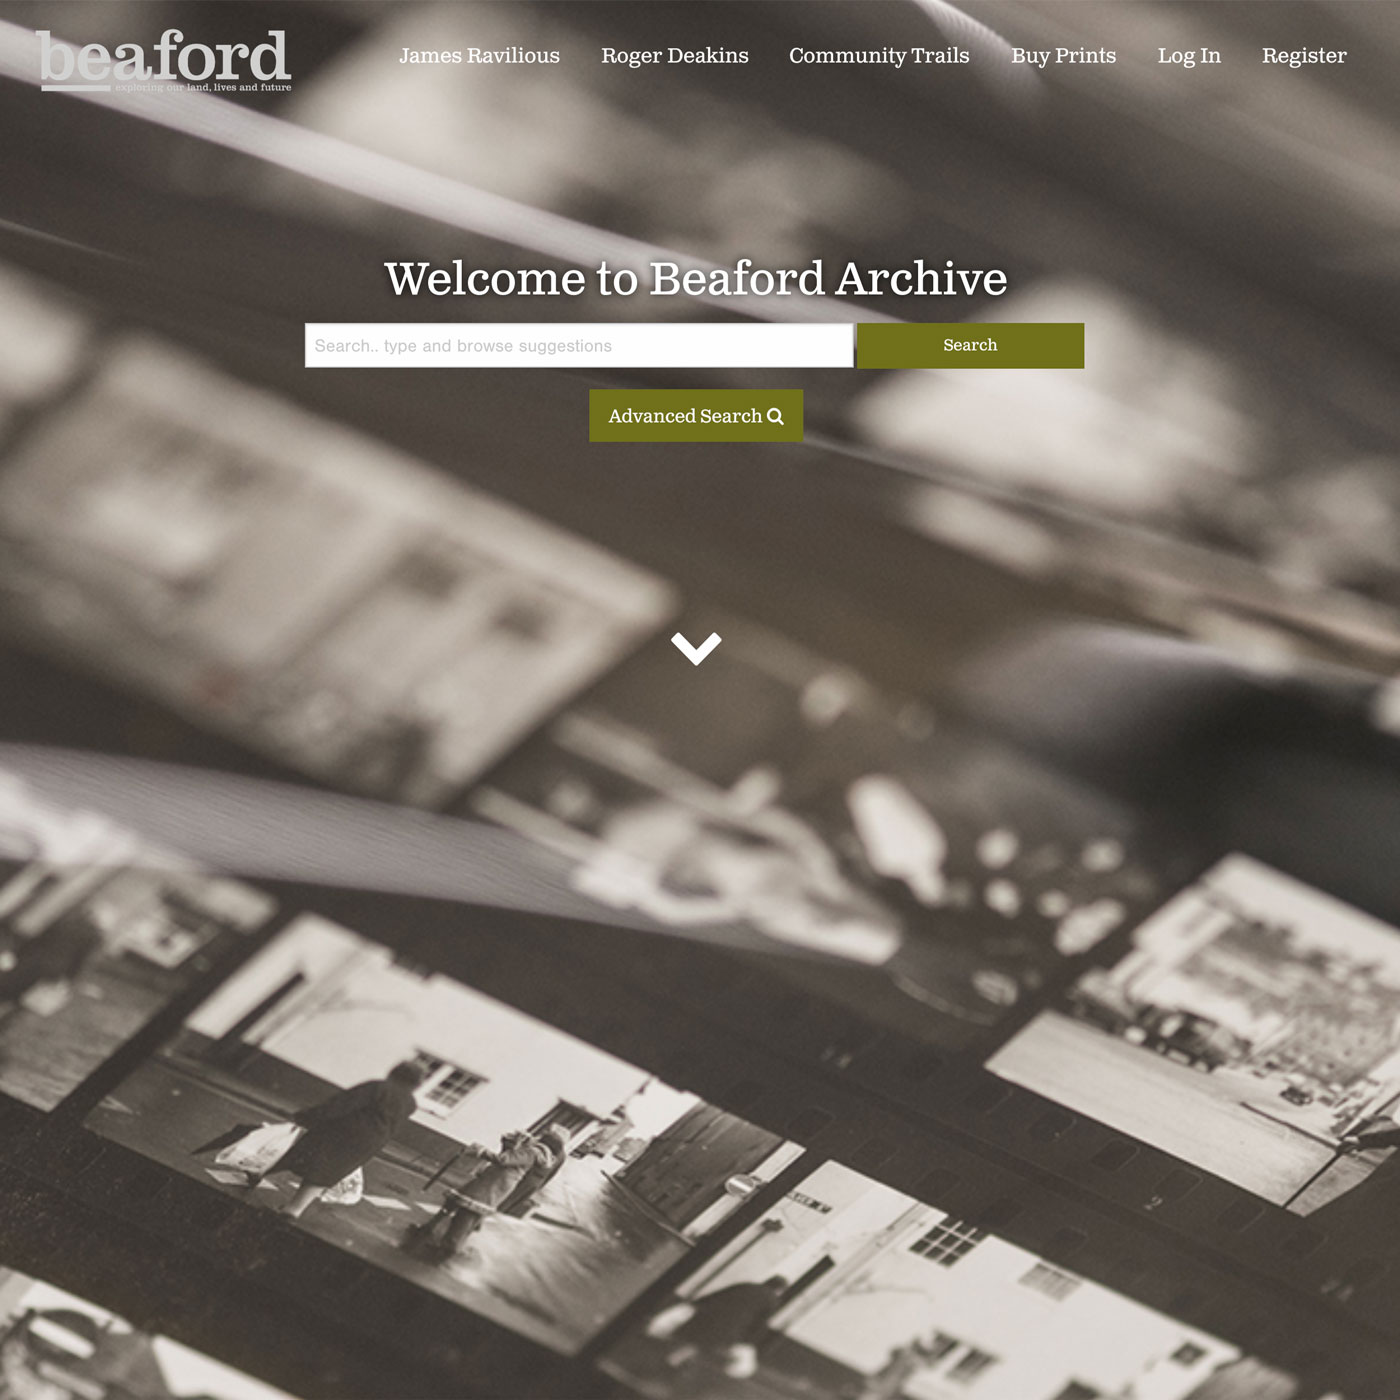 Beaford Archive